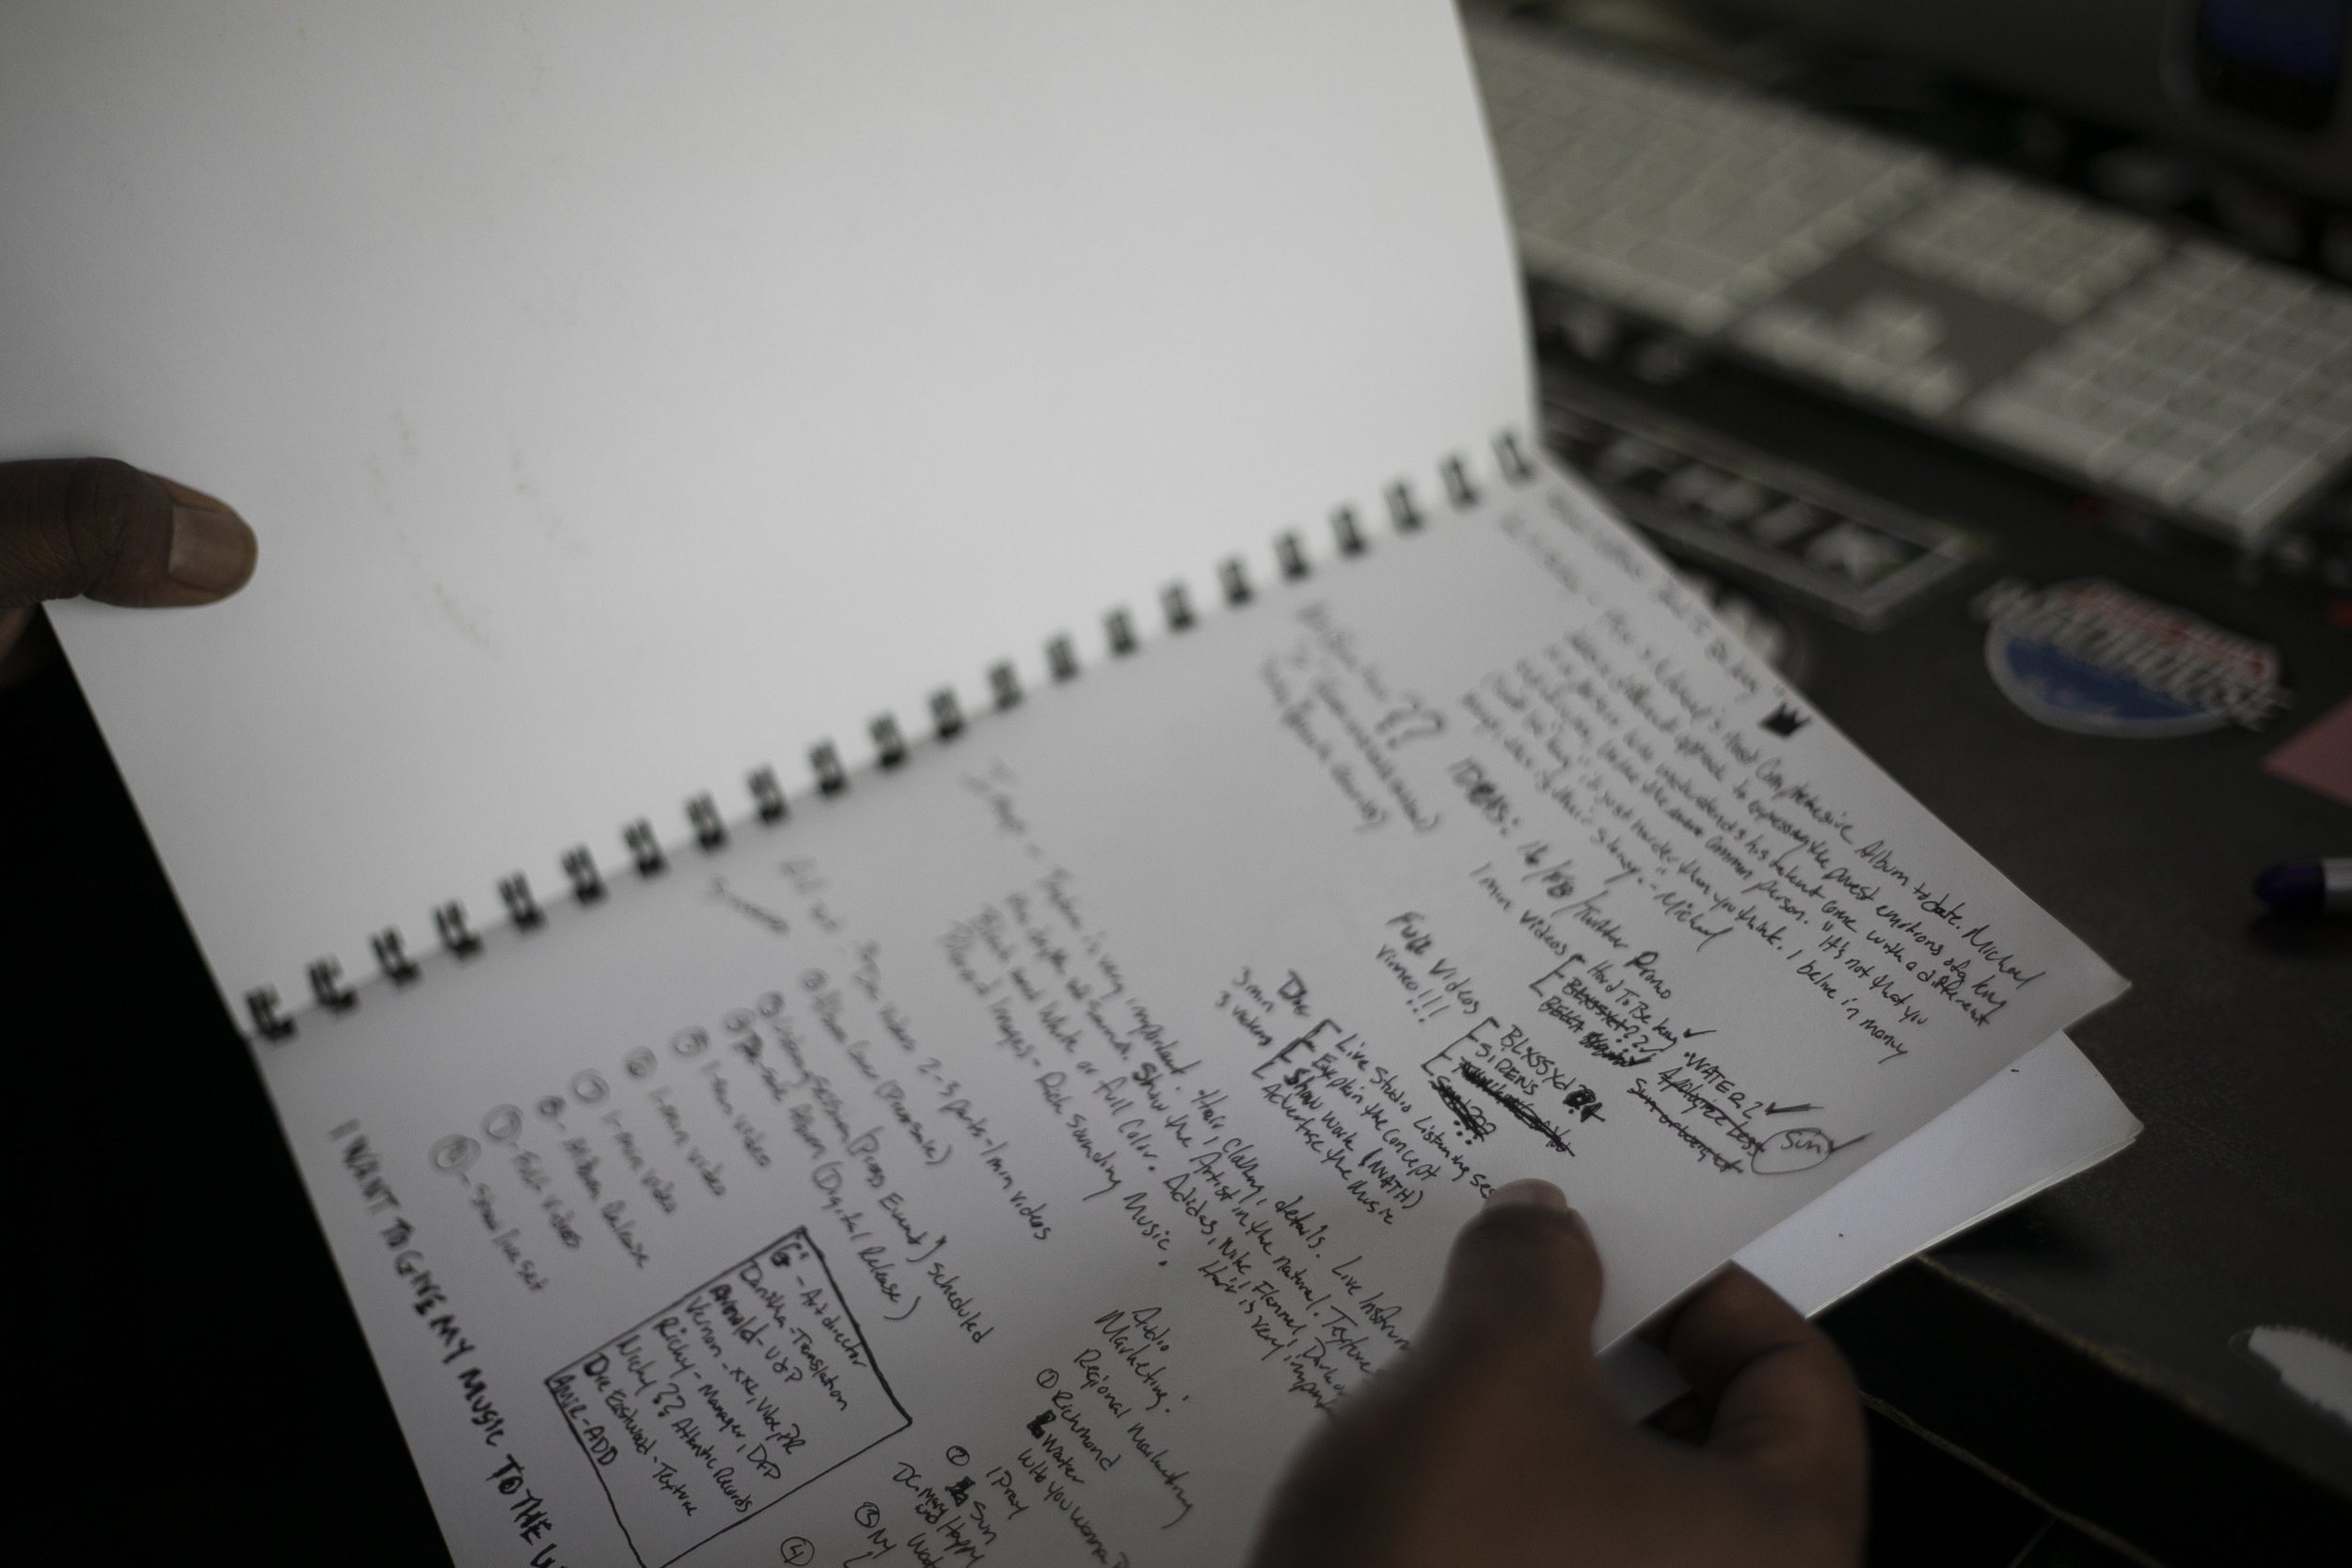 "Mike thumbs through an old notebook on April 24, 2019 in Richmond, Virginia. Mike also co-founded, alongside his brother Brandon Bass, the record label Purple Republic Music Group. He his heavily involved in all aspects of music, including the business side. This page is the rollout plan for his most recent project ""Hard to be King."""